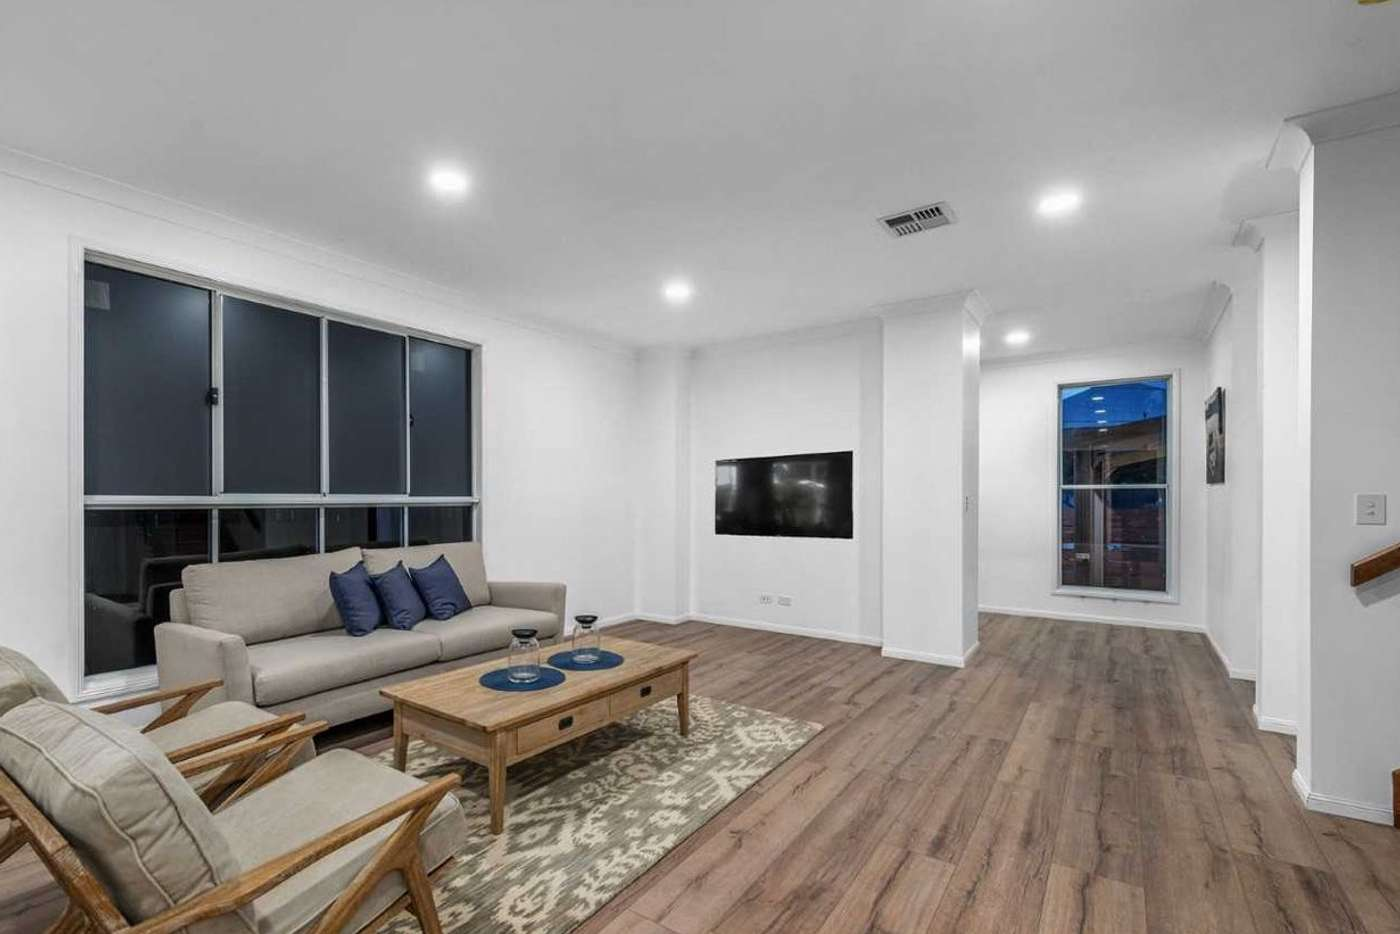 Sixth view of Homely house listing, 70 Dobson Street, Ascot QLD 4007